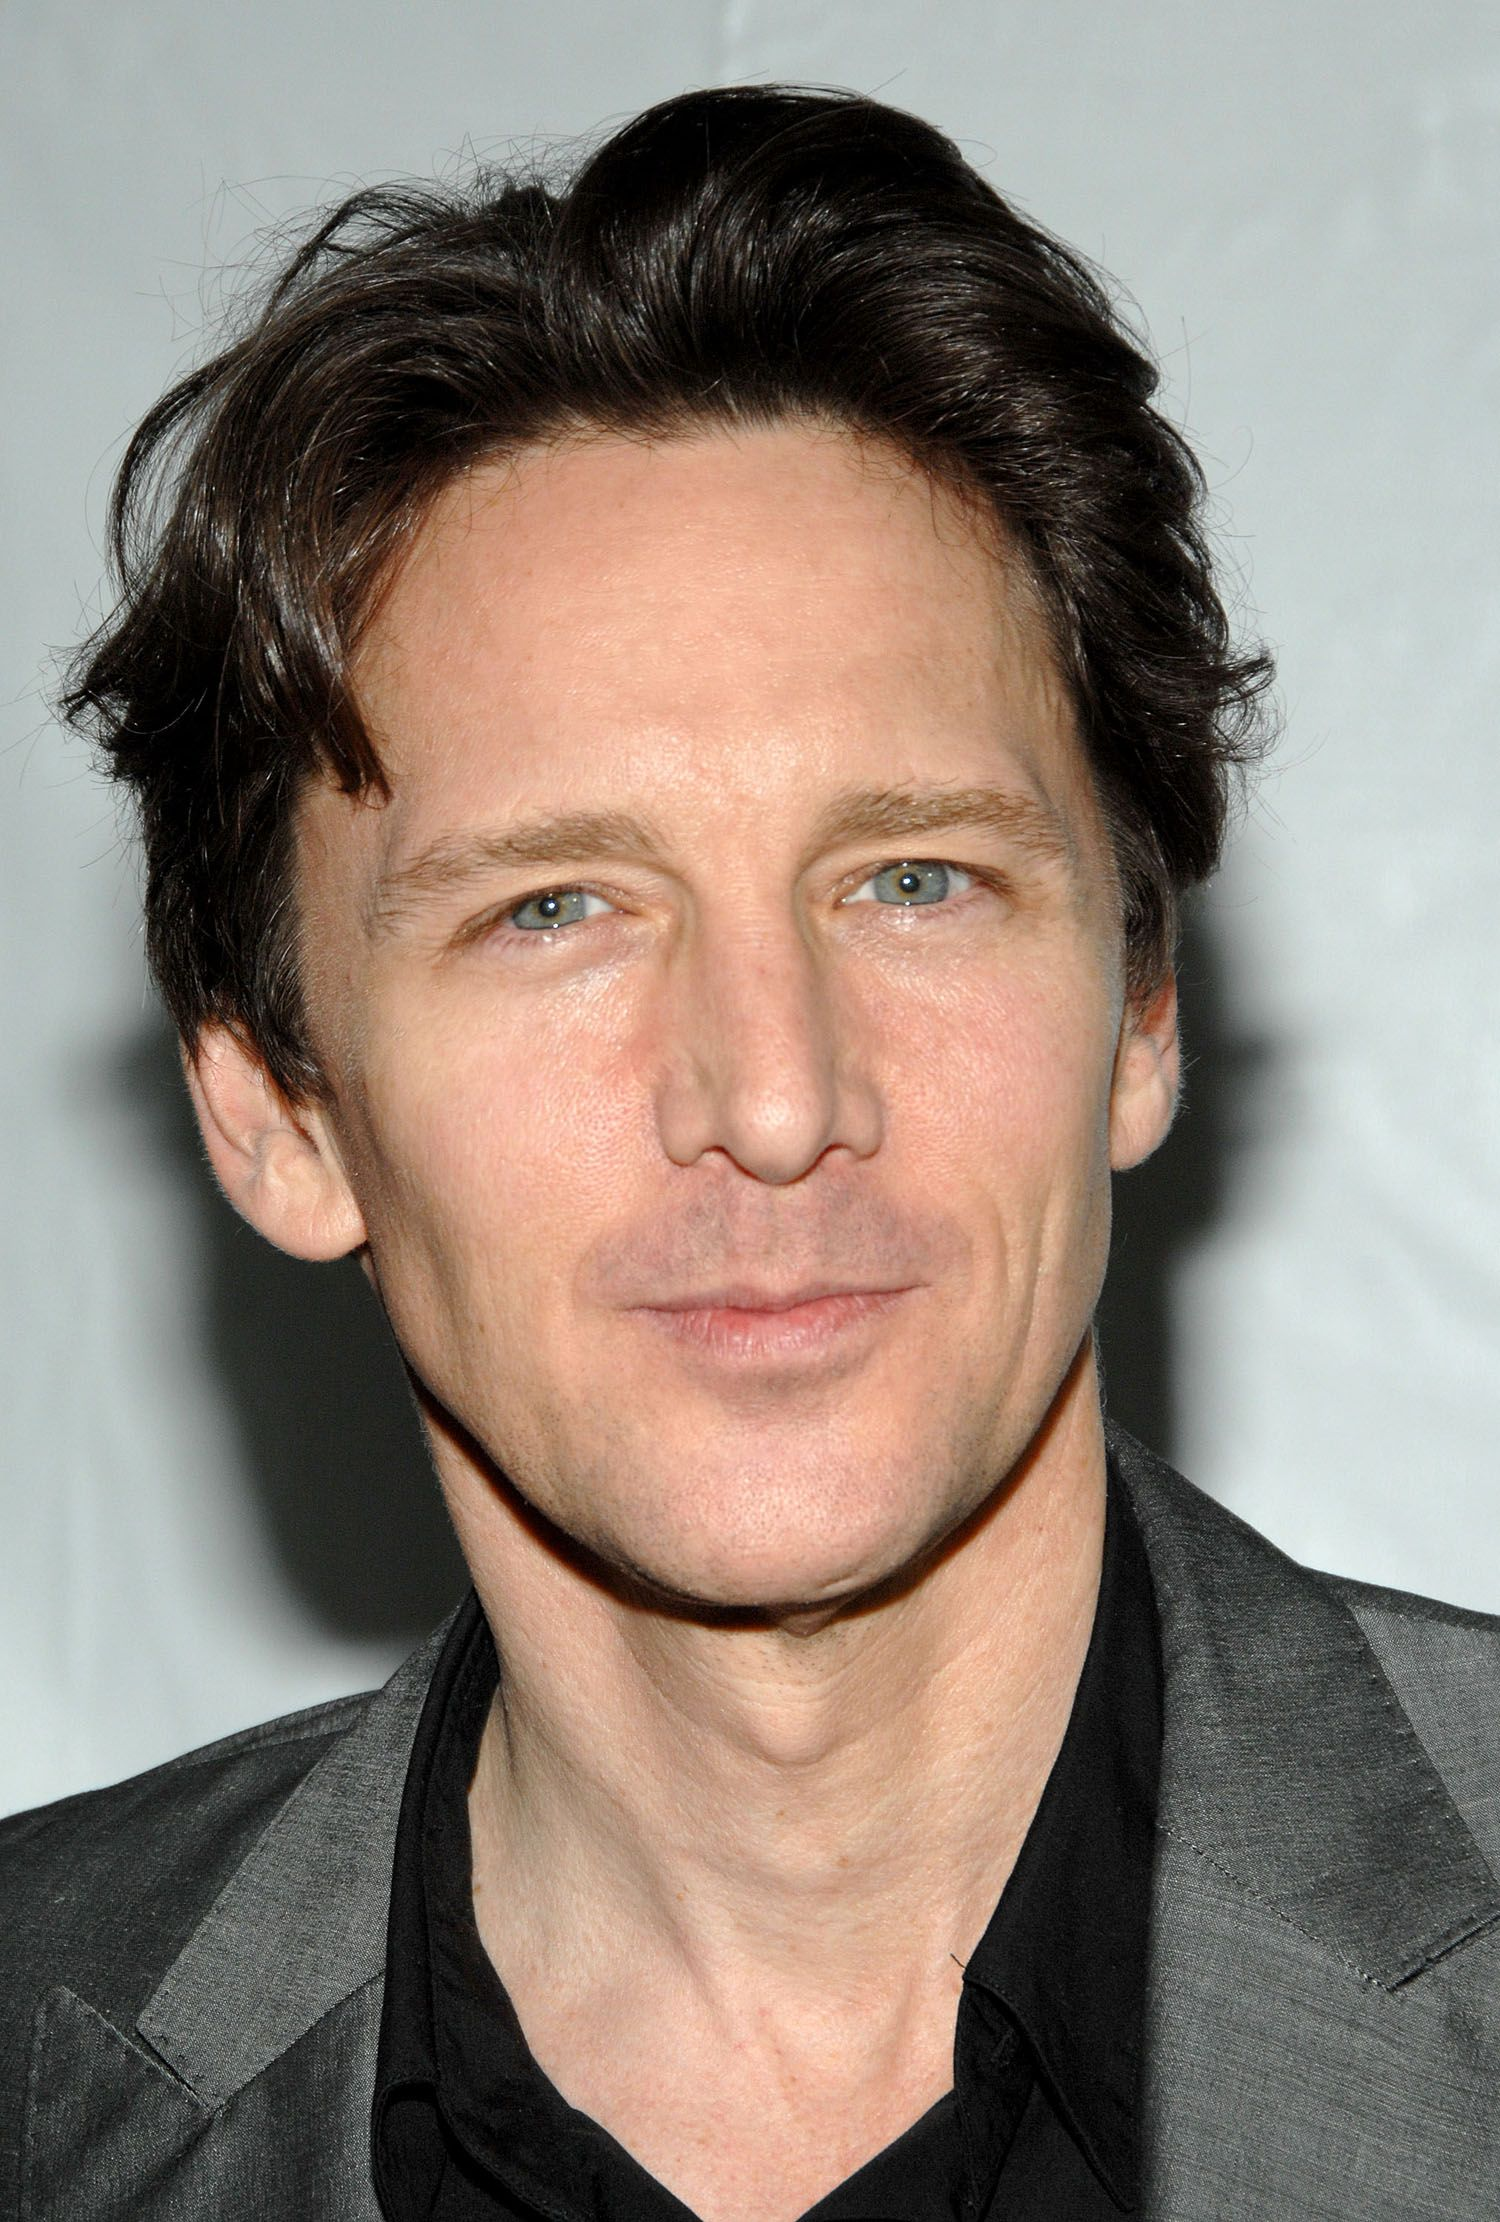 Andrew Mccarthy Imdb Hot Hunks Andrew Mccarthy Celebrities